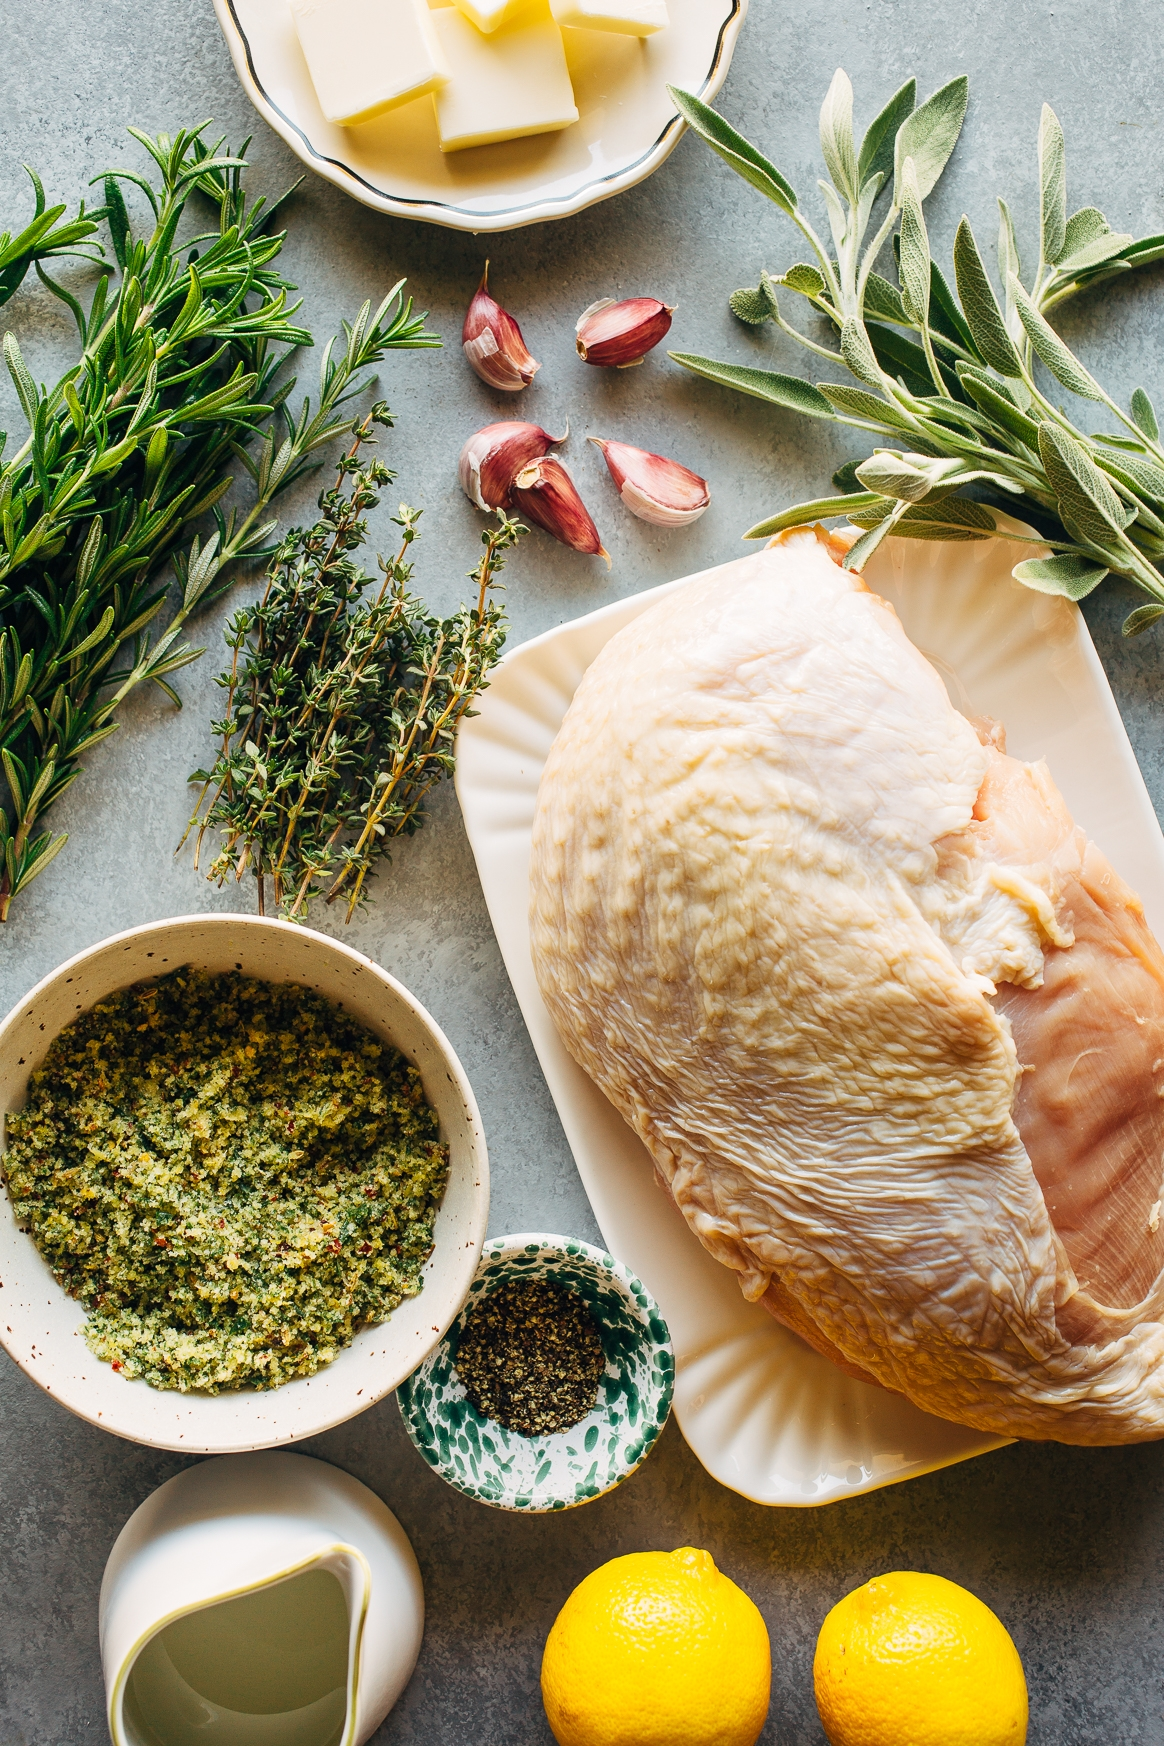 Herb-Roasted Turkey Breast Ingredients